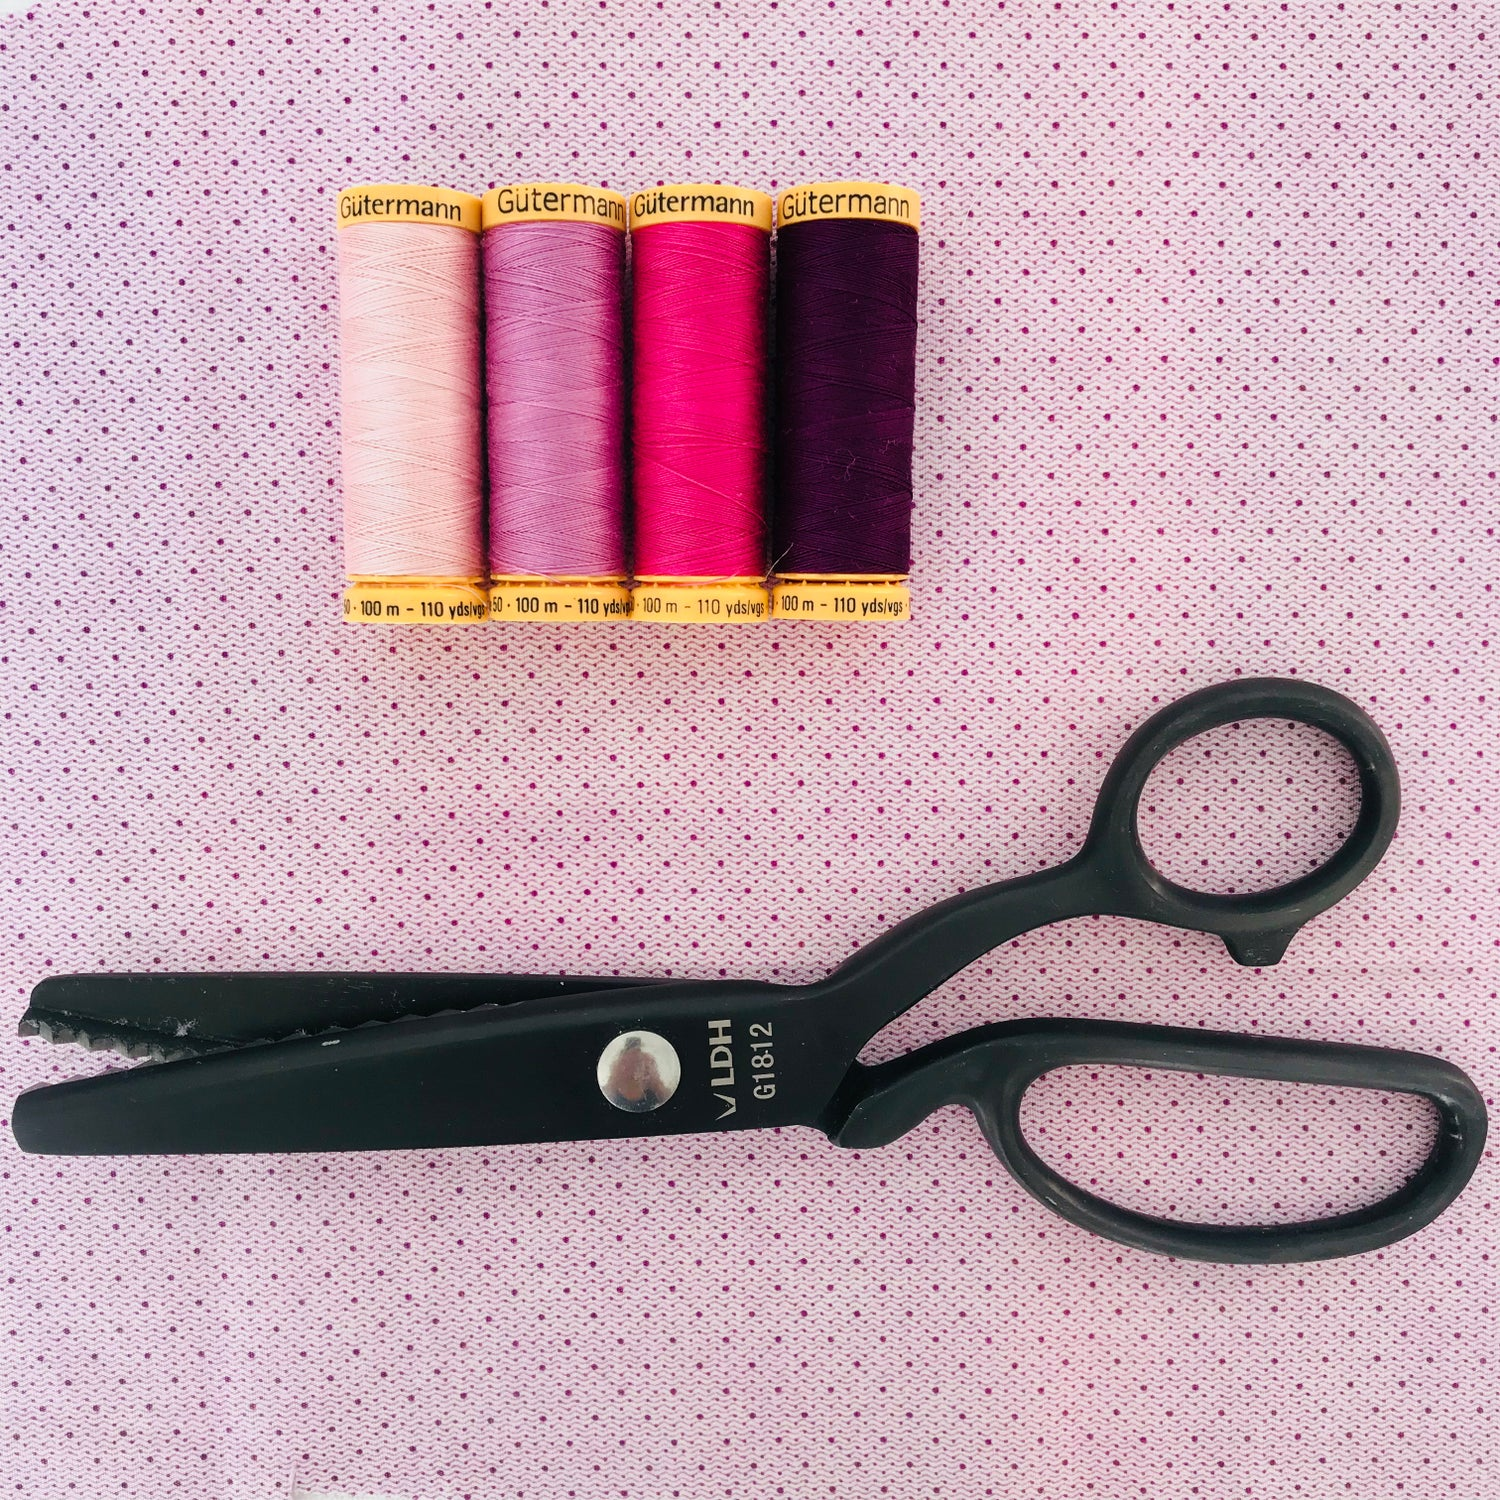 Image of Pinking Shears - Midnight Edition